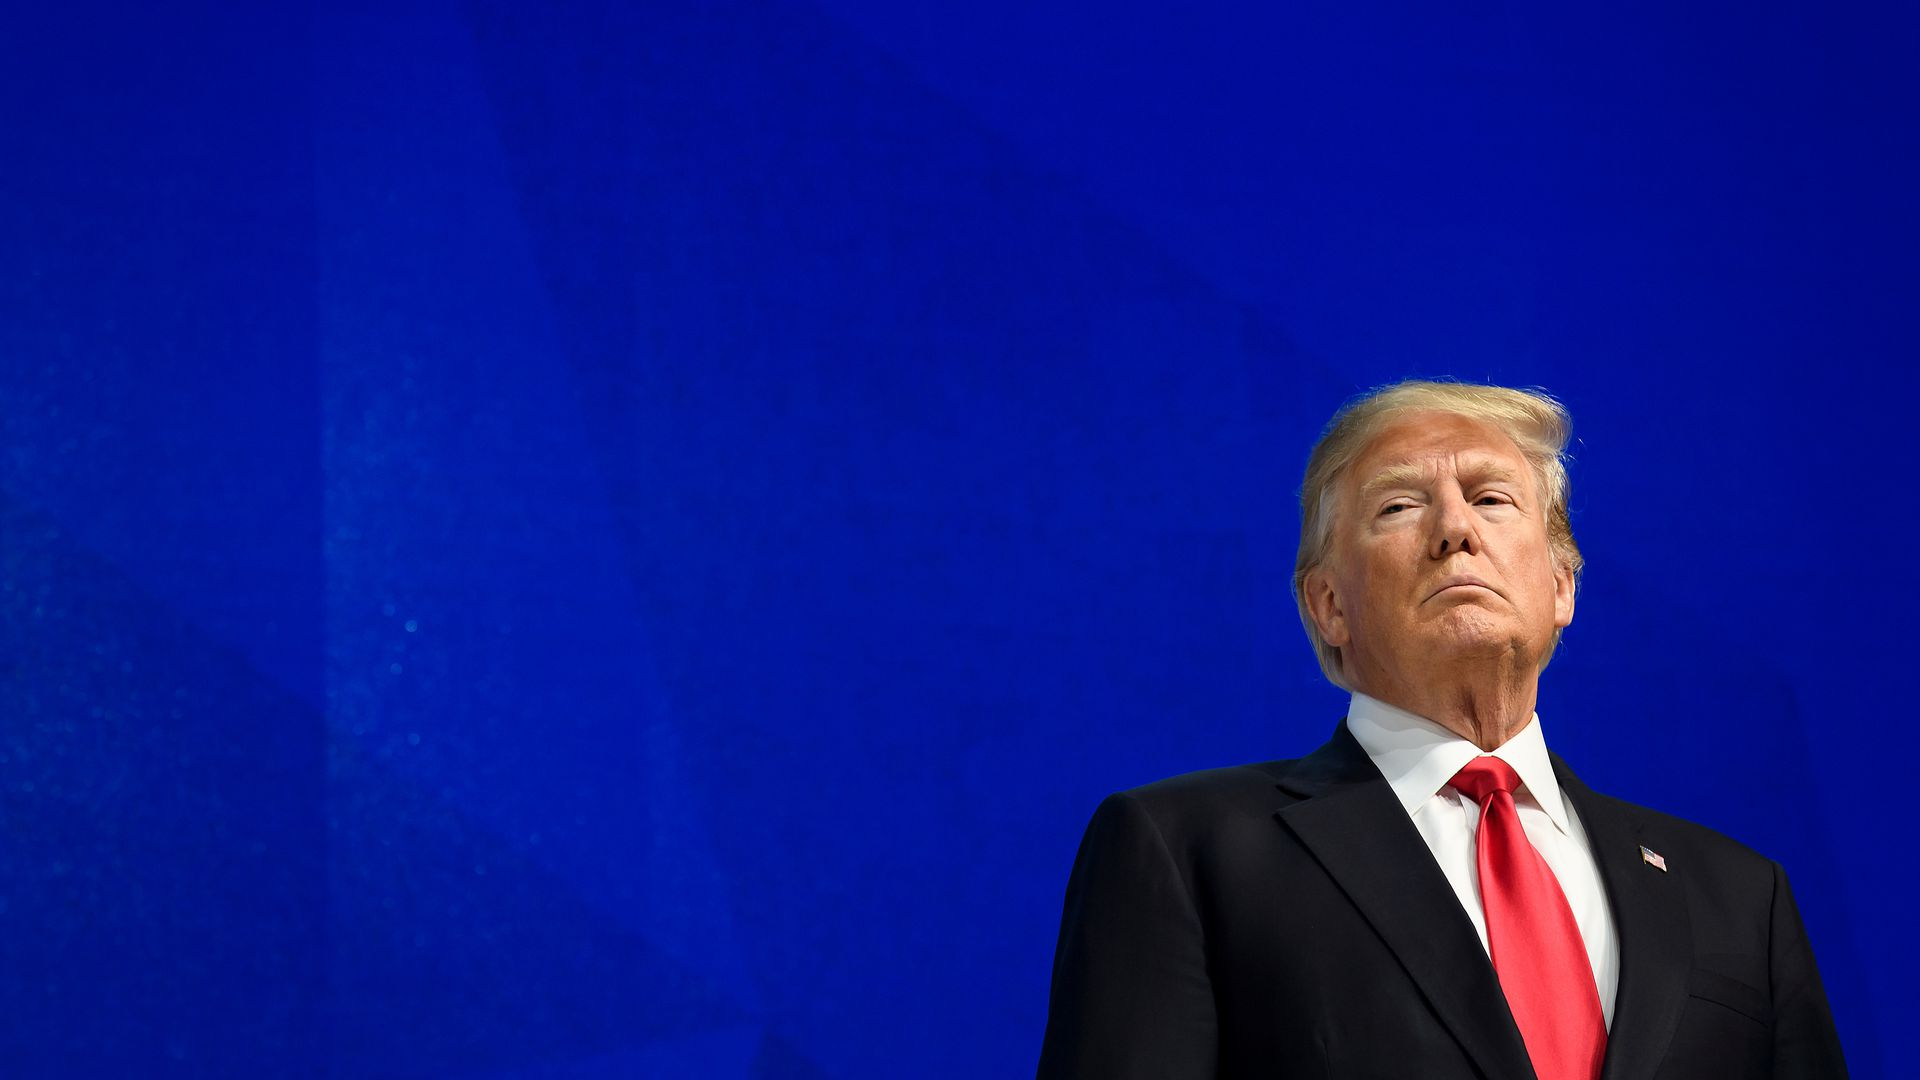 Trump at Davos against a blue background